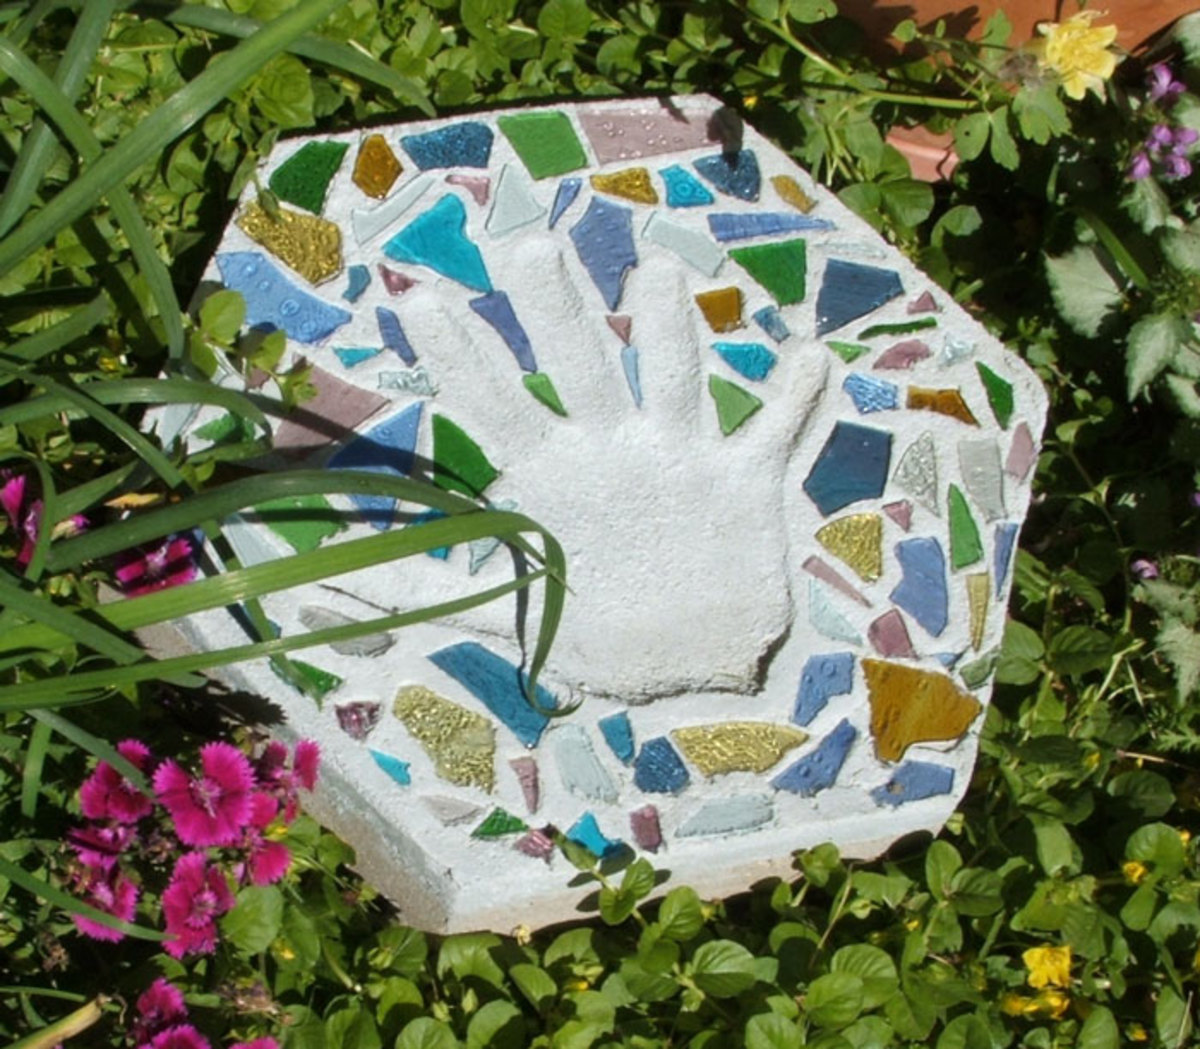 How To Make Personalized Stepping Stones To Upgrade Your Garden Feltmagnet Crafts